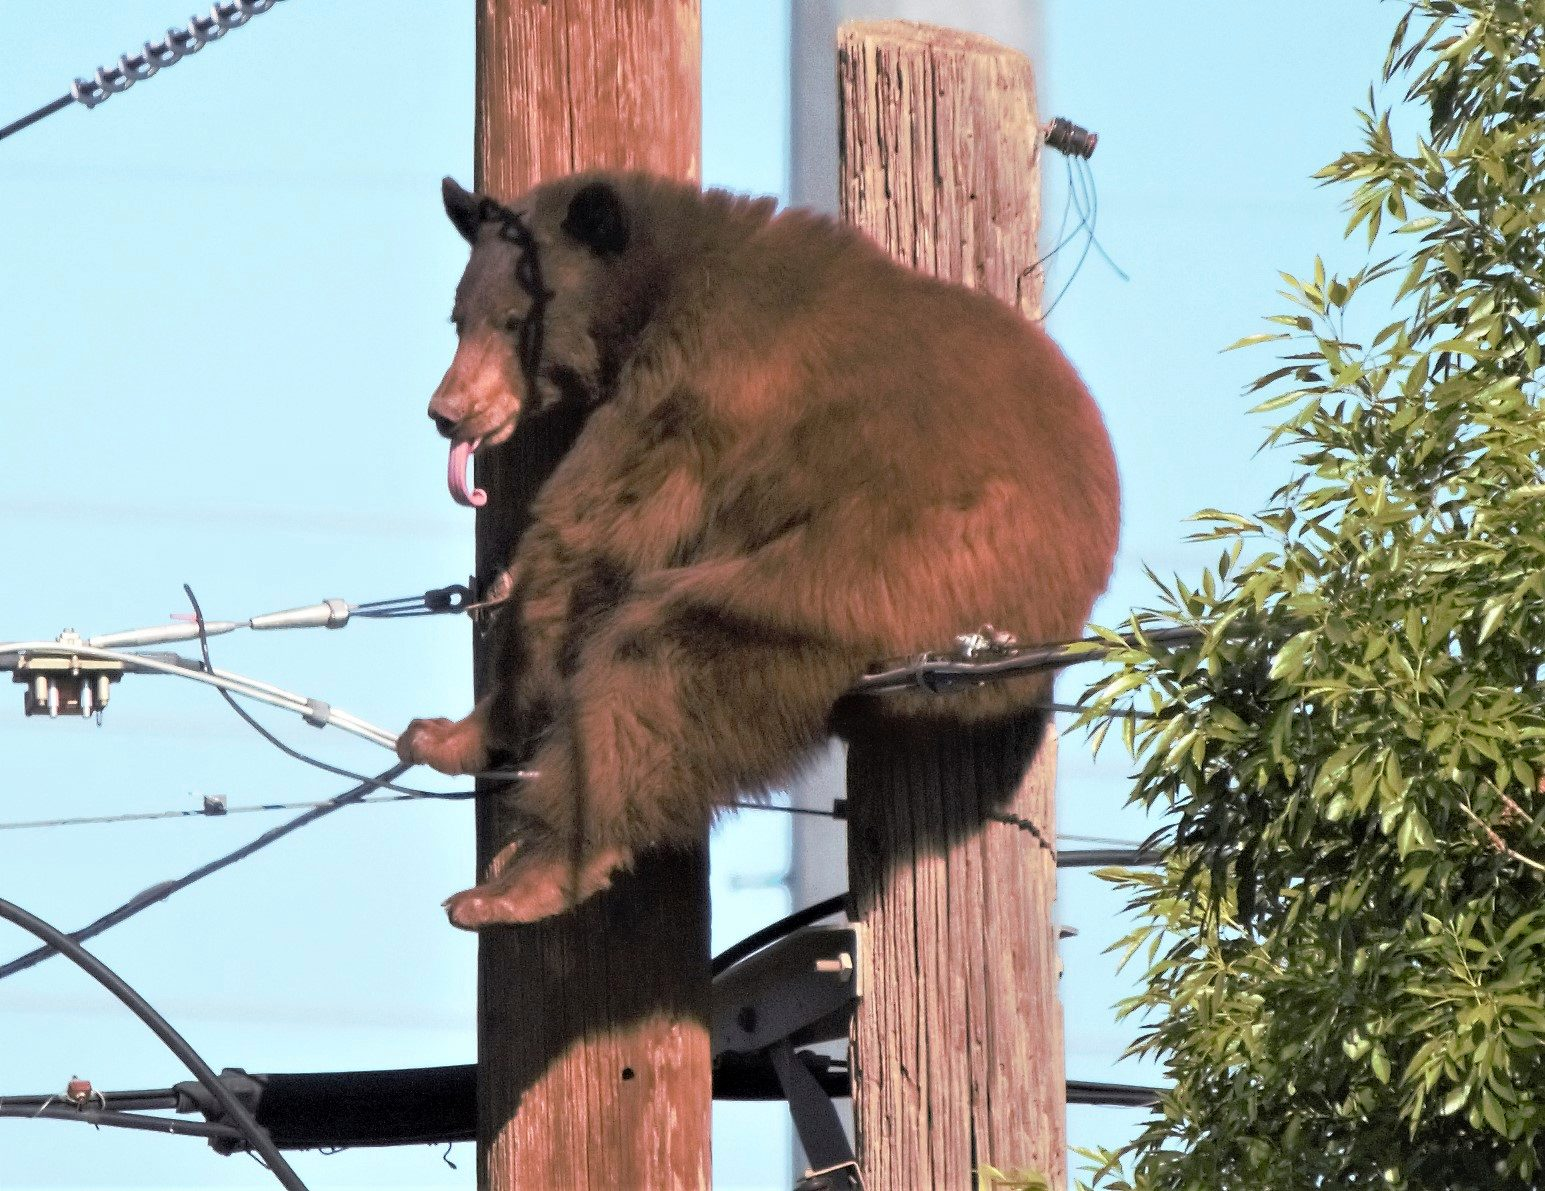 Bear Has Close Call on Utility Poles in Arizona Border City - snopes